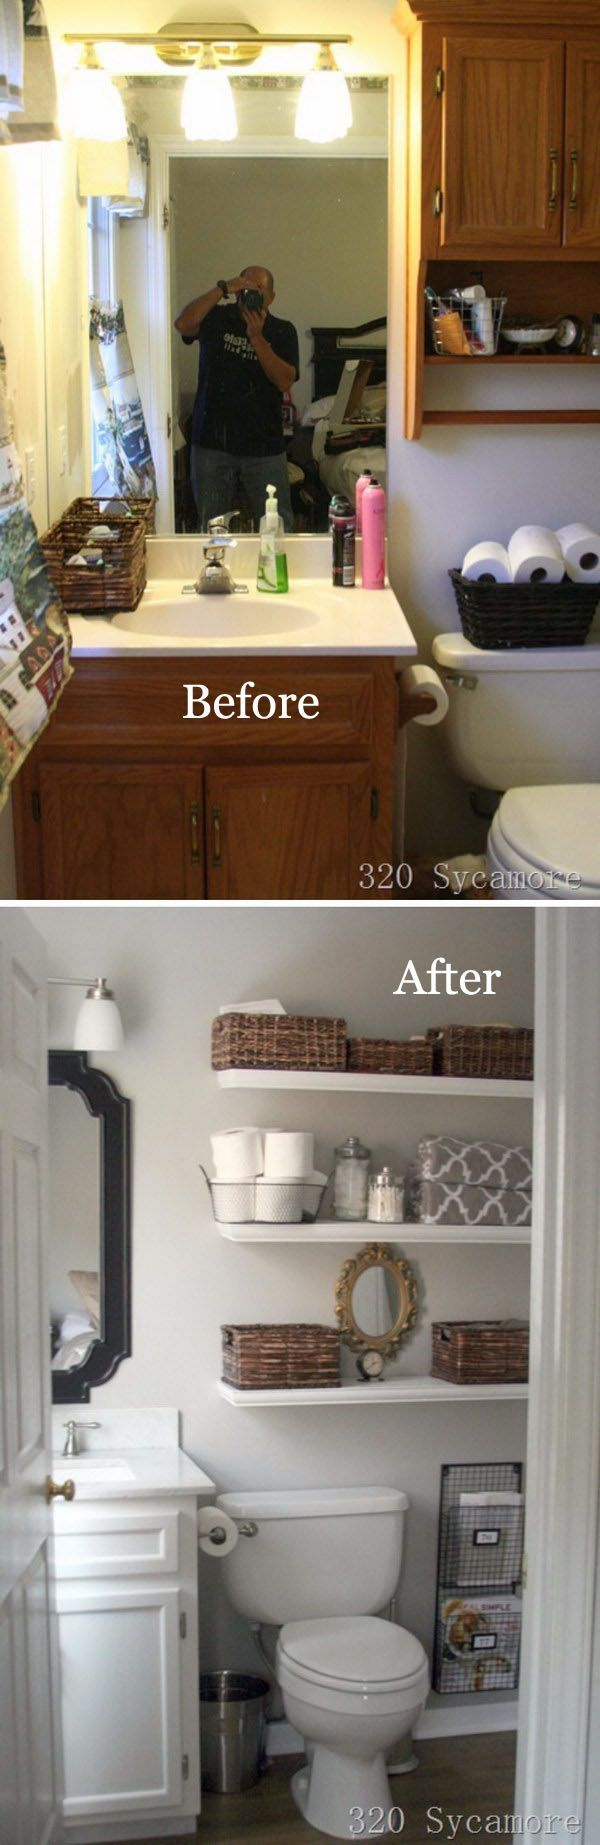 Bathroom decor ideas diy - 17 Best Ideas About Small Bathroom Decorating On Pinterest Diy Bathroom Decor Bathroom Organization And Diy Bathroom Ideas